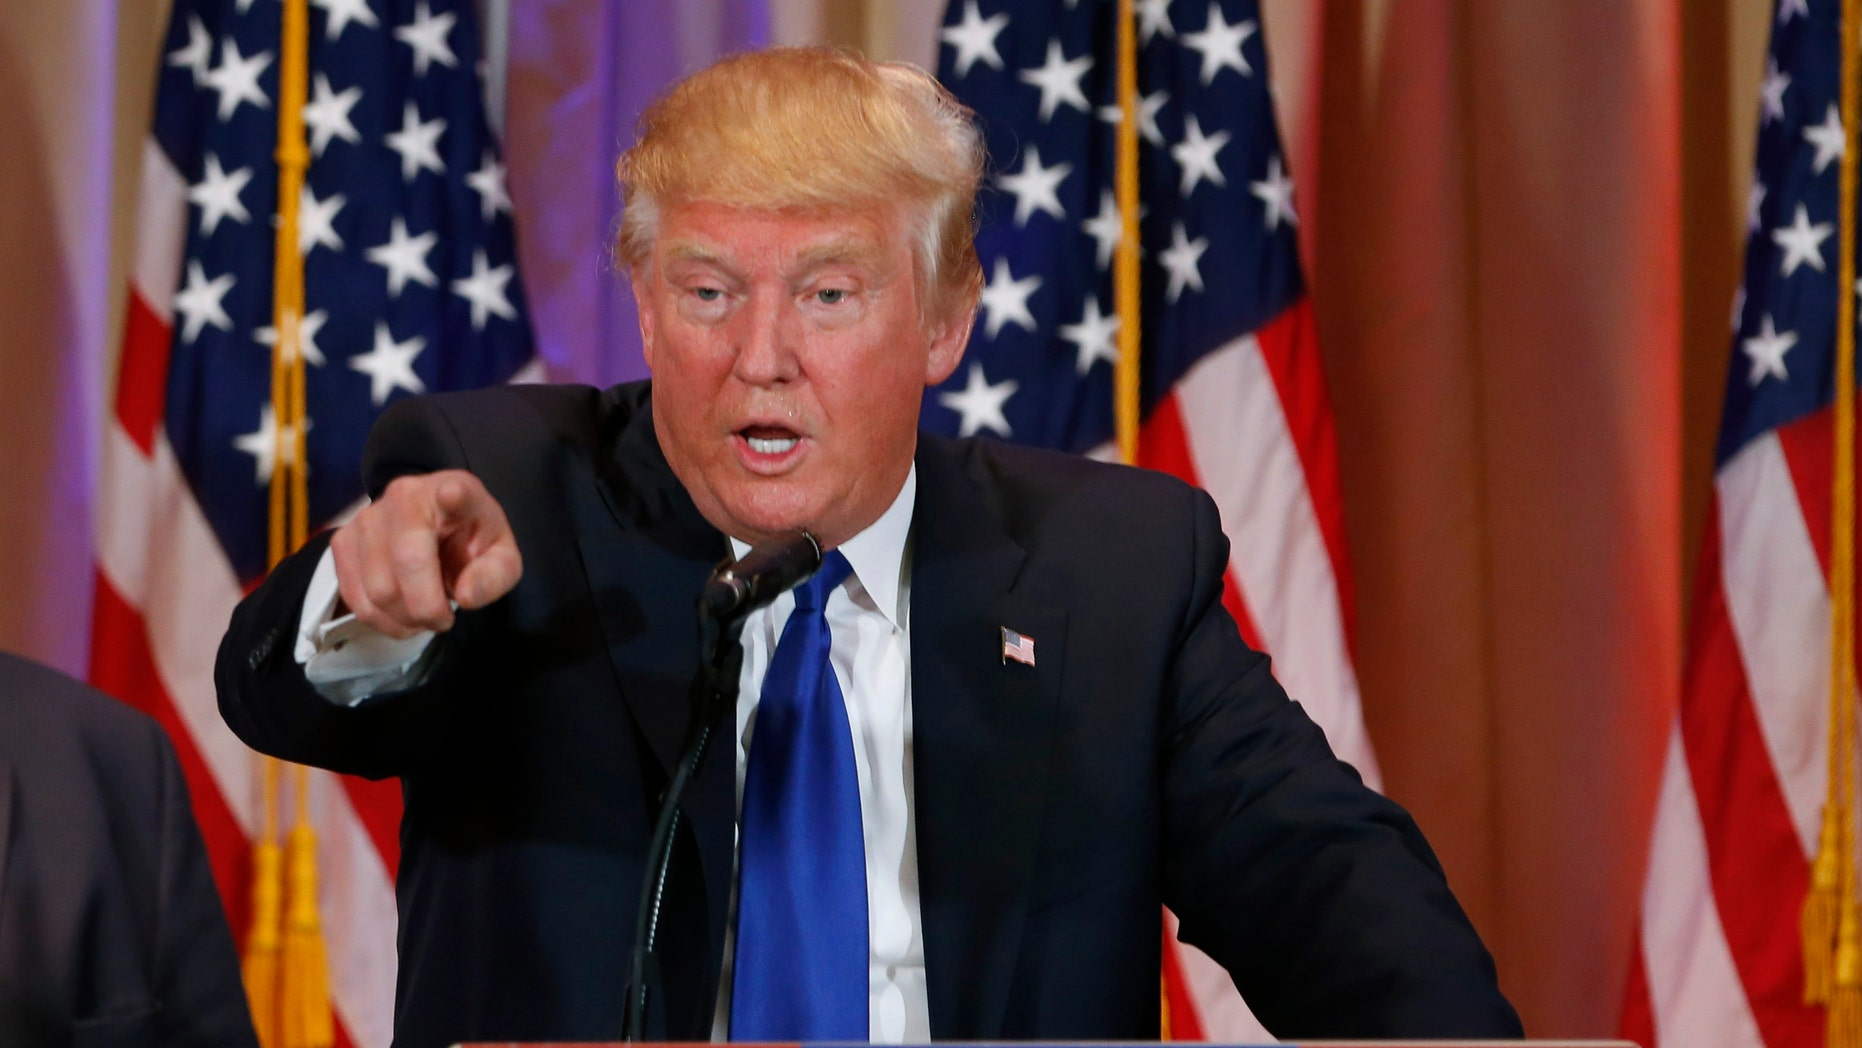 Republican U.S. presidential candidate Donald Trump speaks about the results of Super Tuesday primary and caucus voting during a news conference in Palm Beach, Florida March 1, 2016. (REUTERS/Scott Audette)